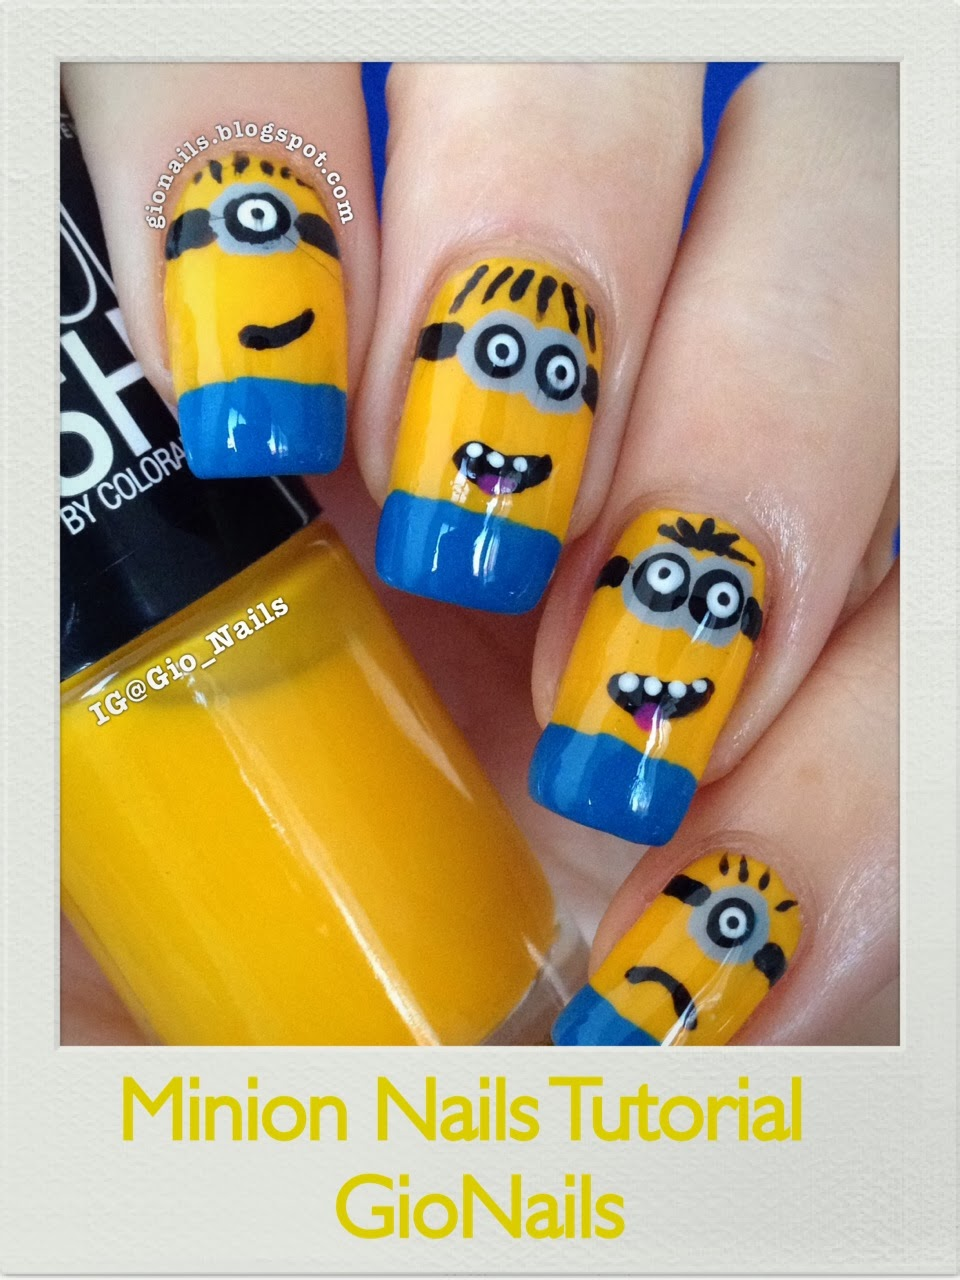 http://gionails.blogspot.be/2014/02/tutorial-minion-nails.html